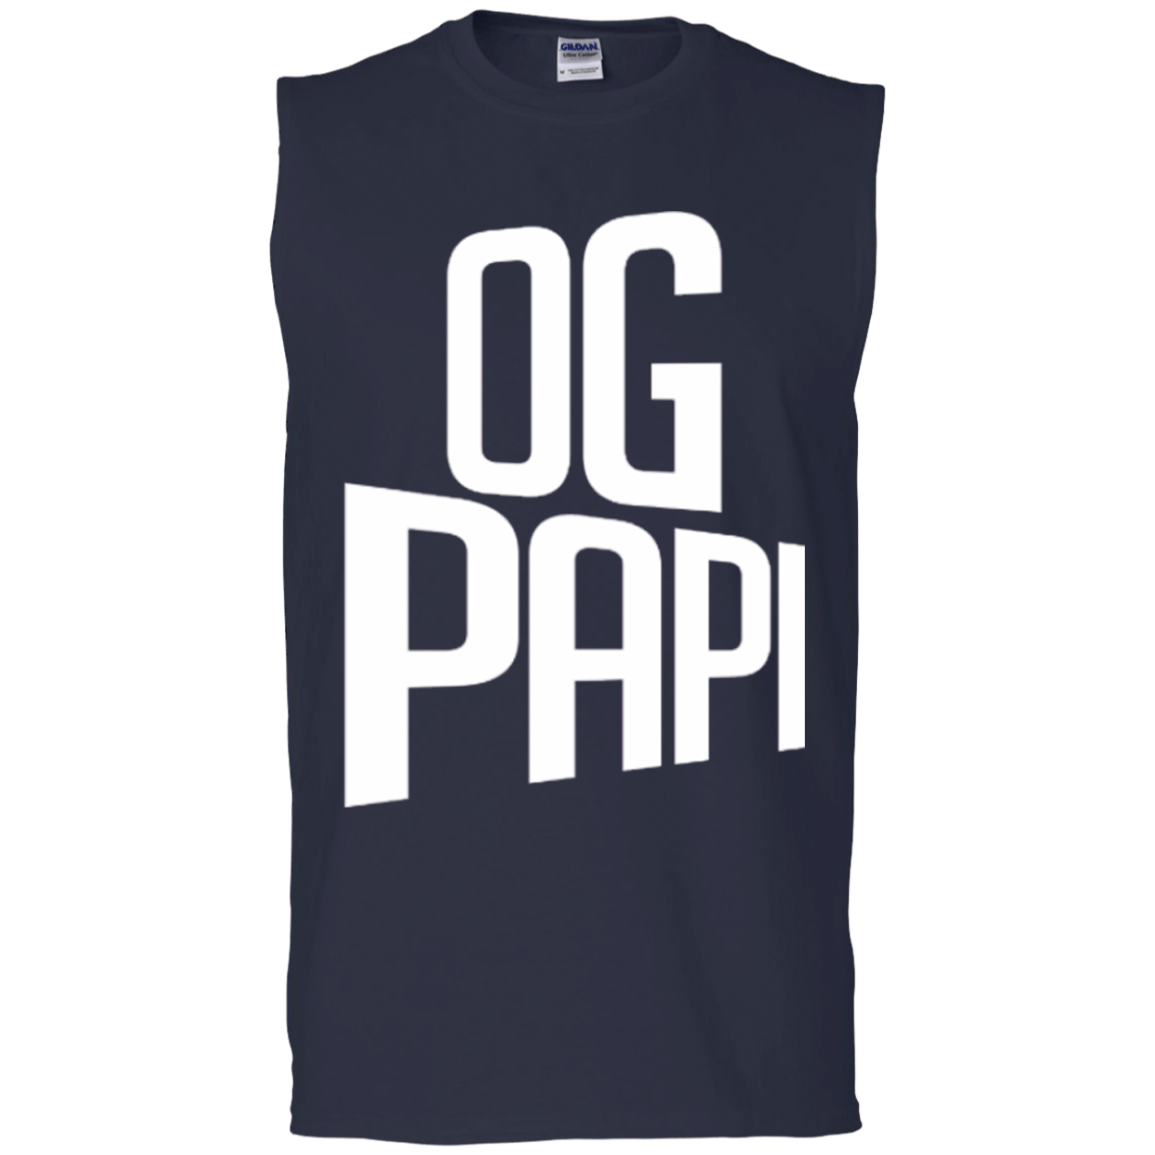 Og papi mens latin fashion sleeveless graphic tees for Sleeveless graphic t shirts